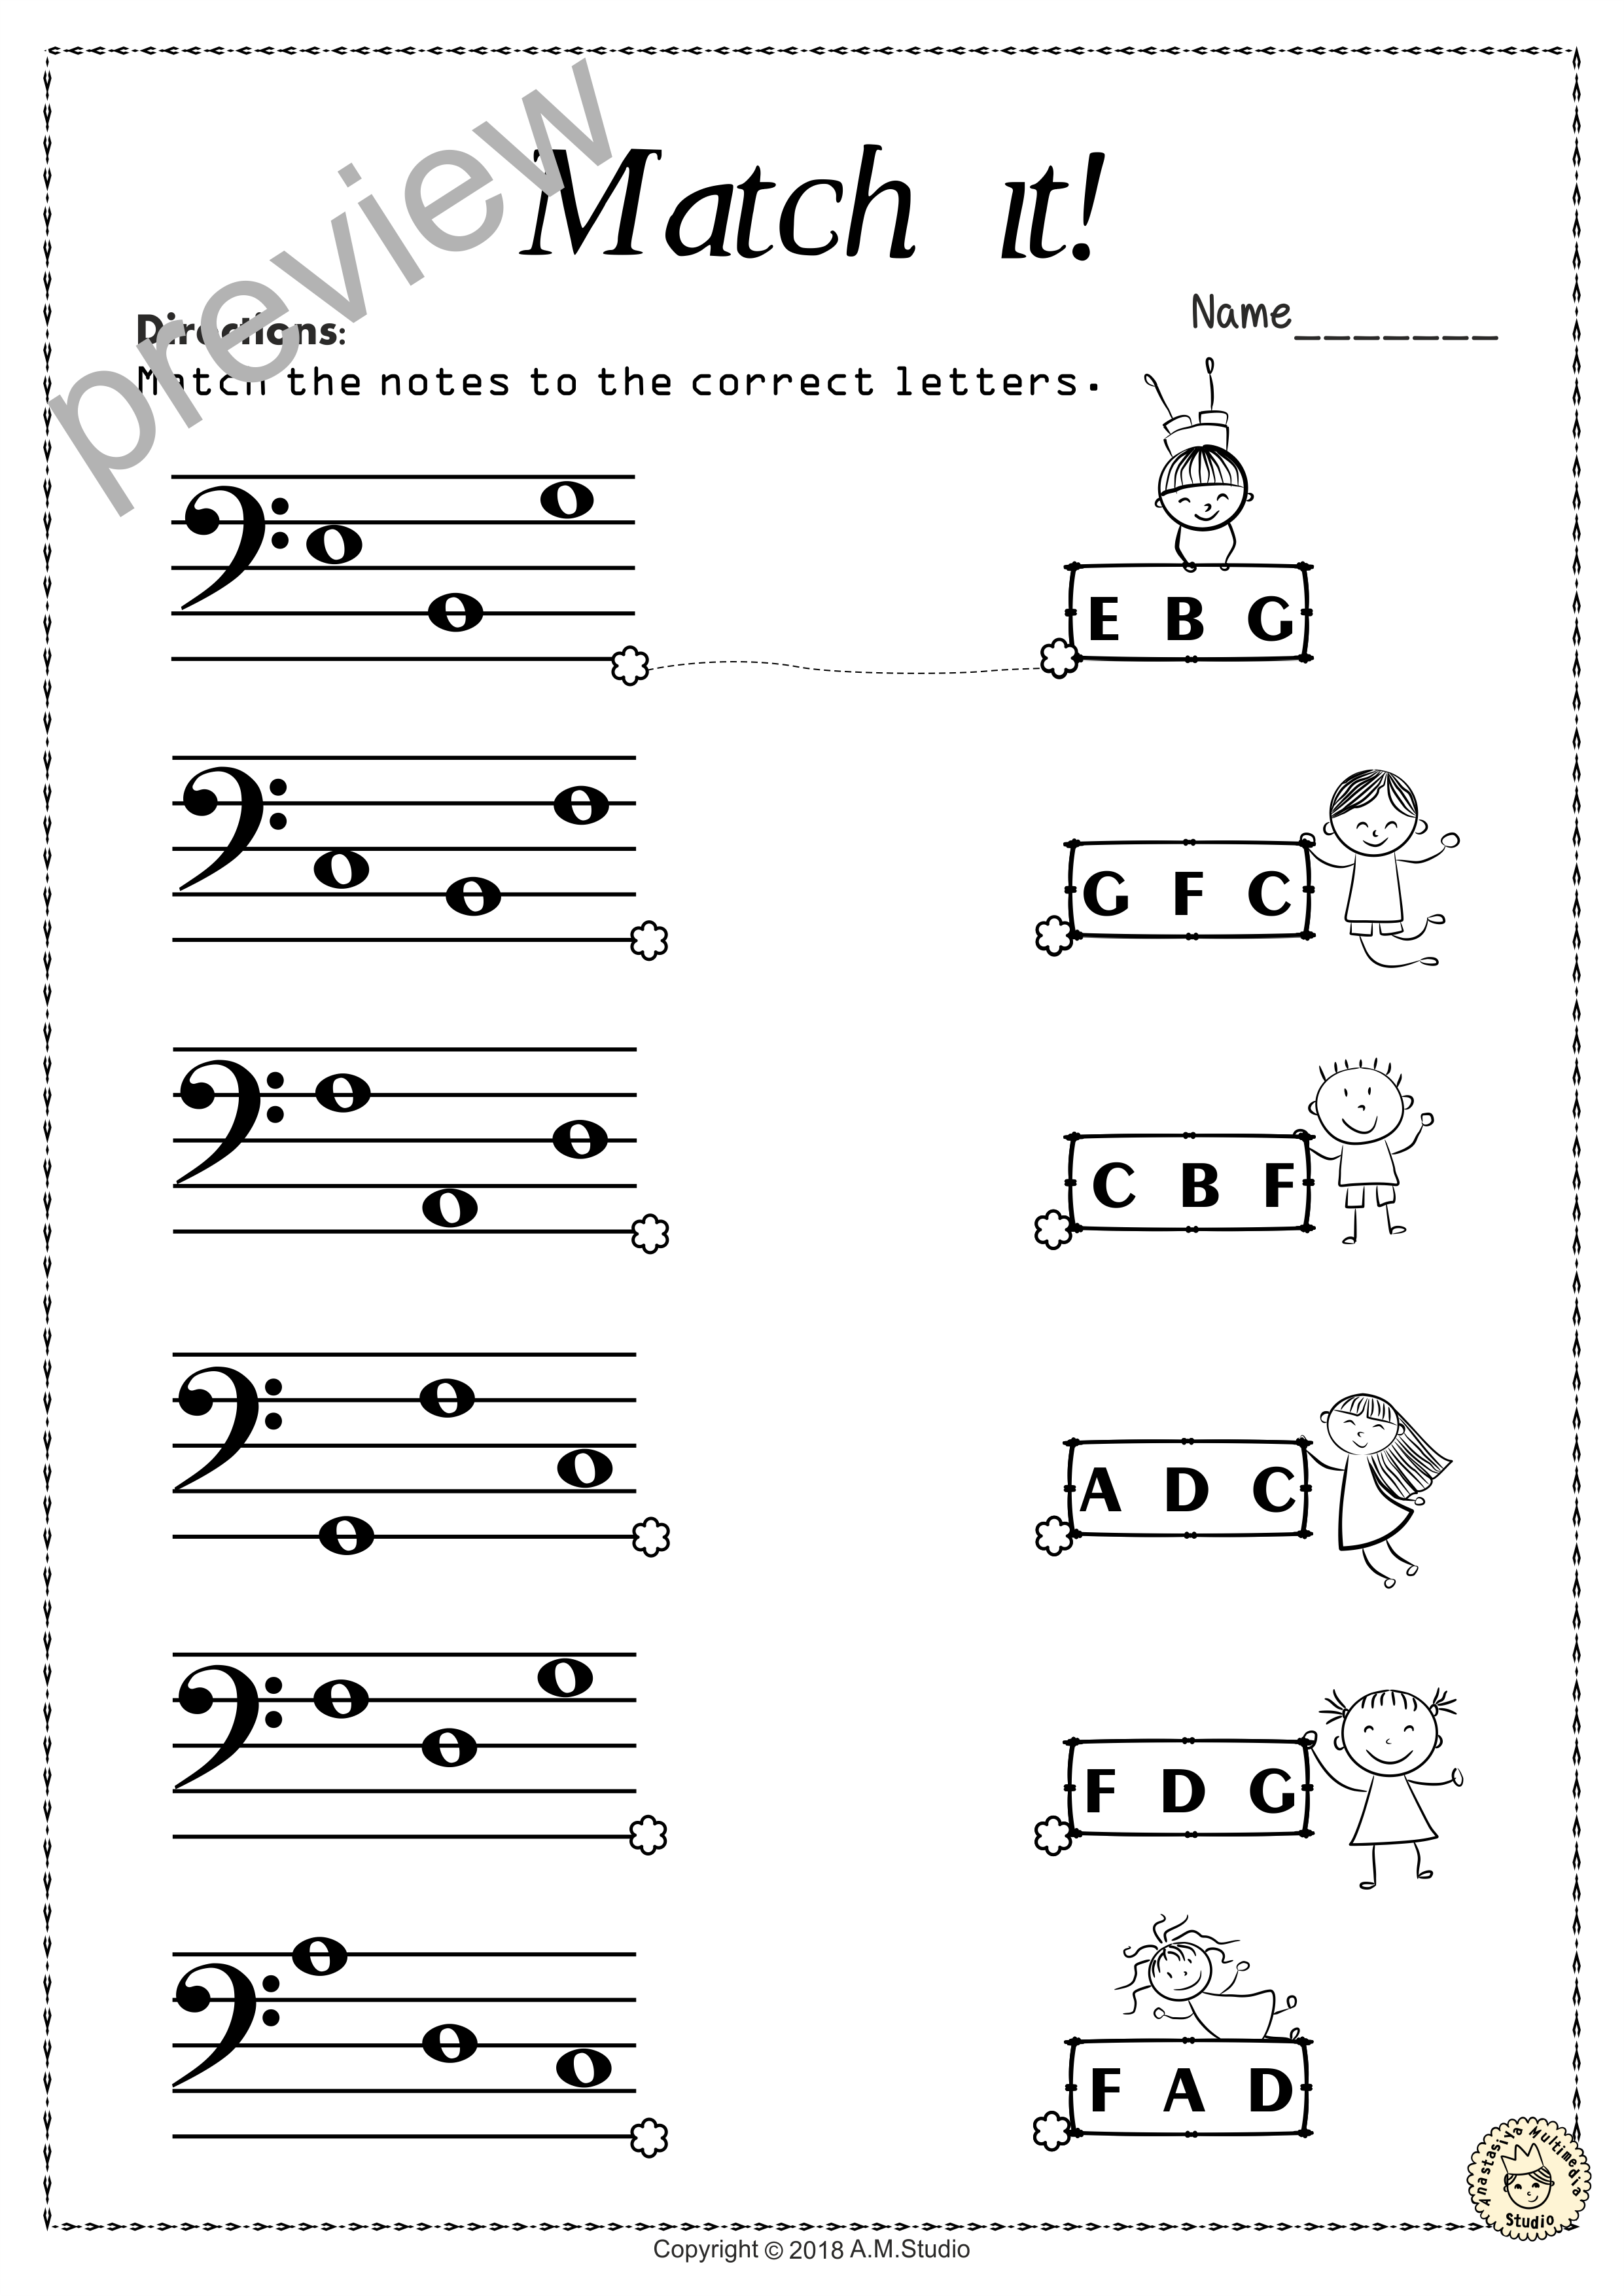 This Set Of 10 Music Worksheets Is Designed To Help Your